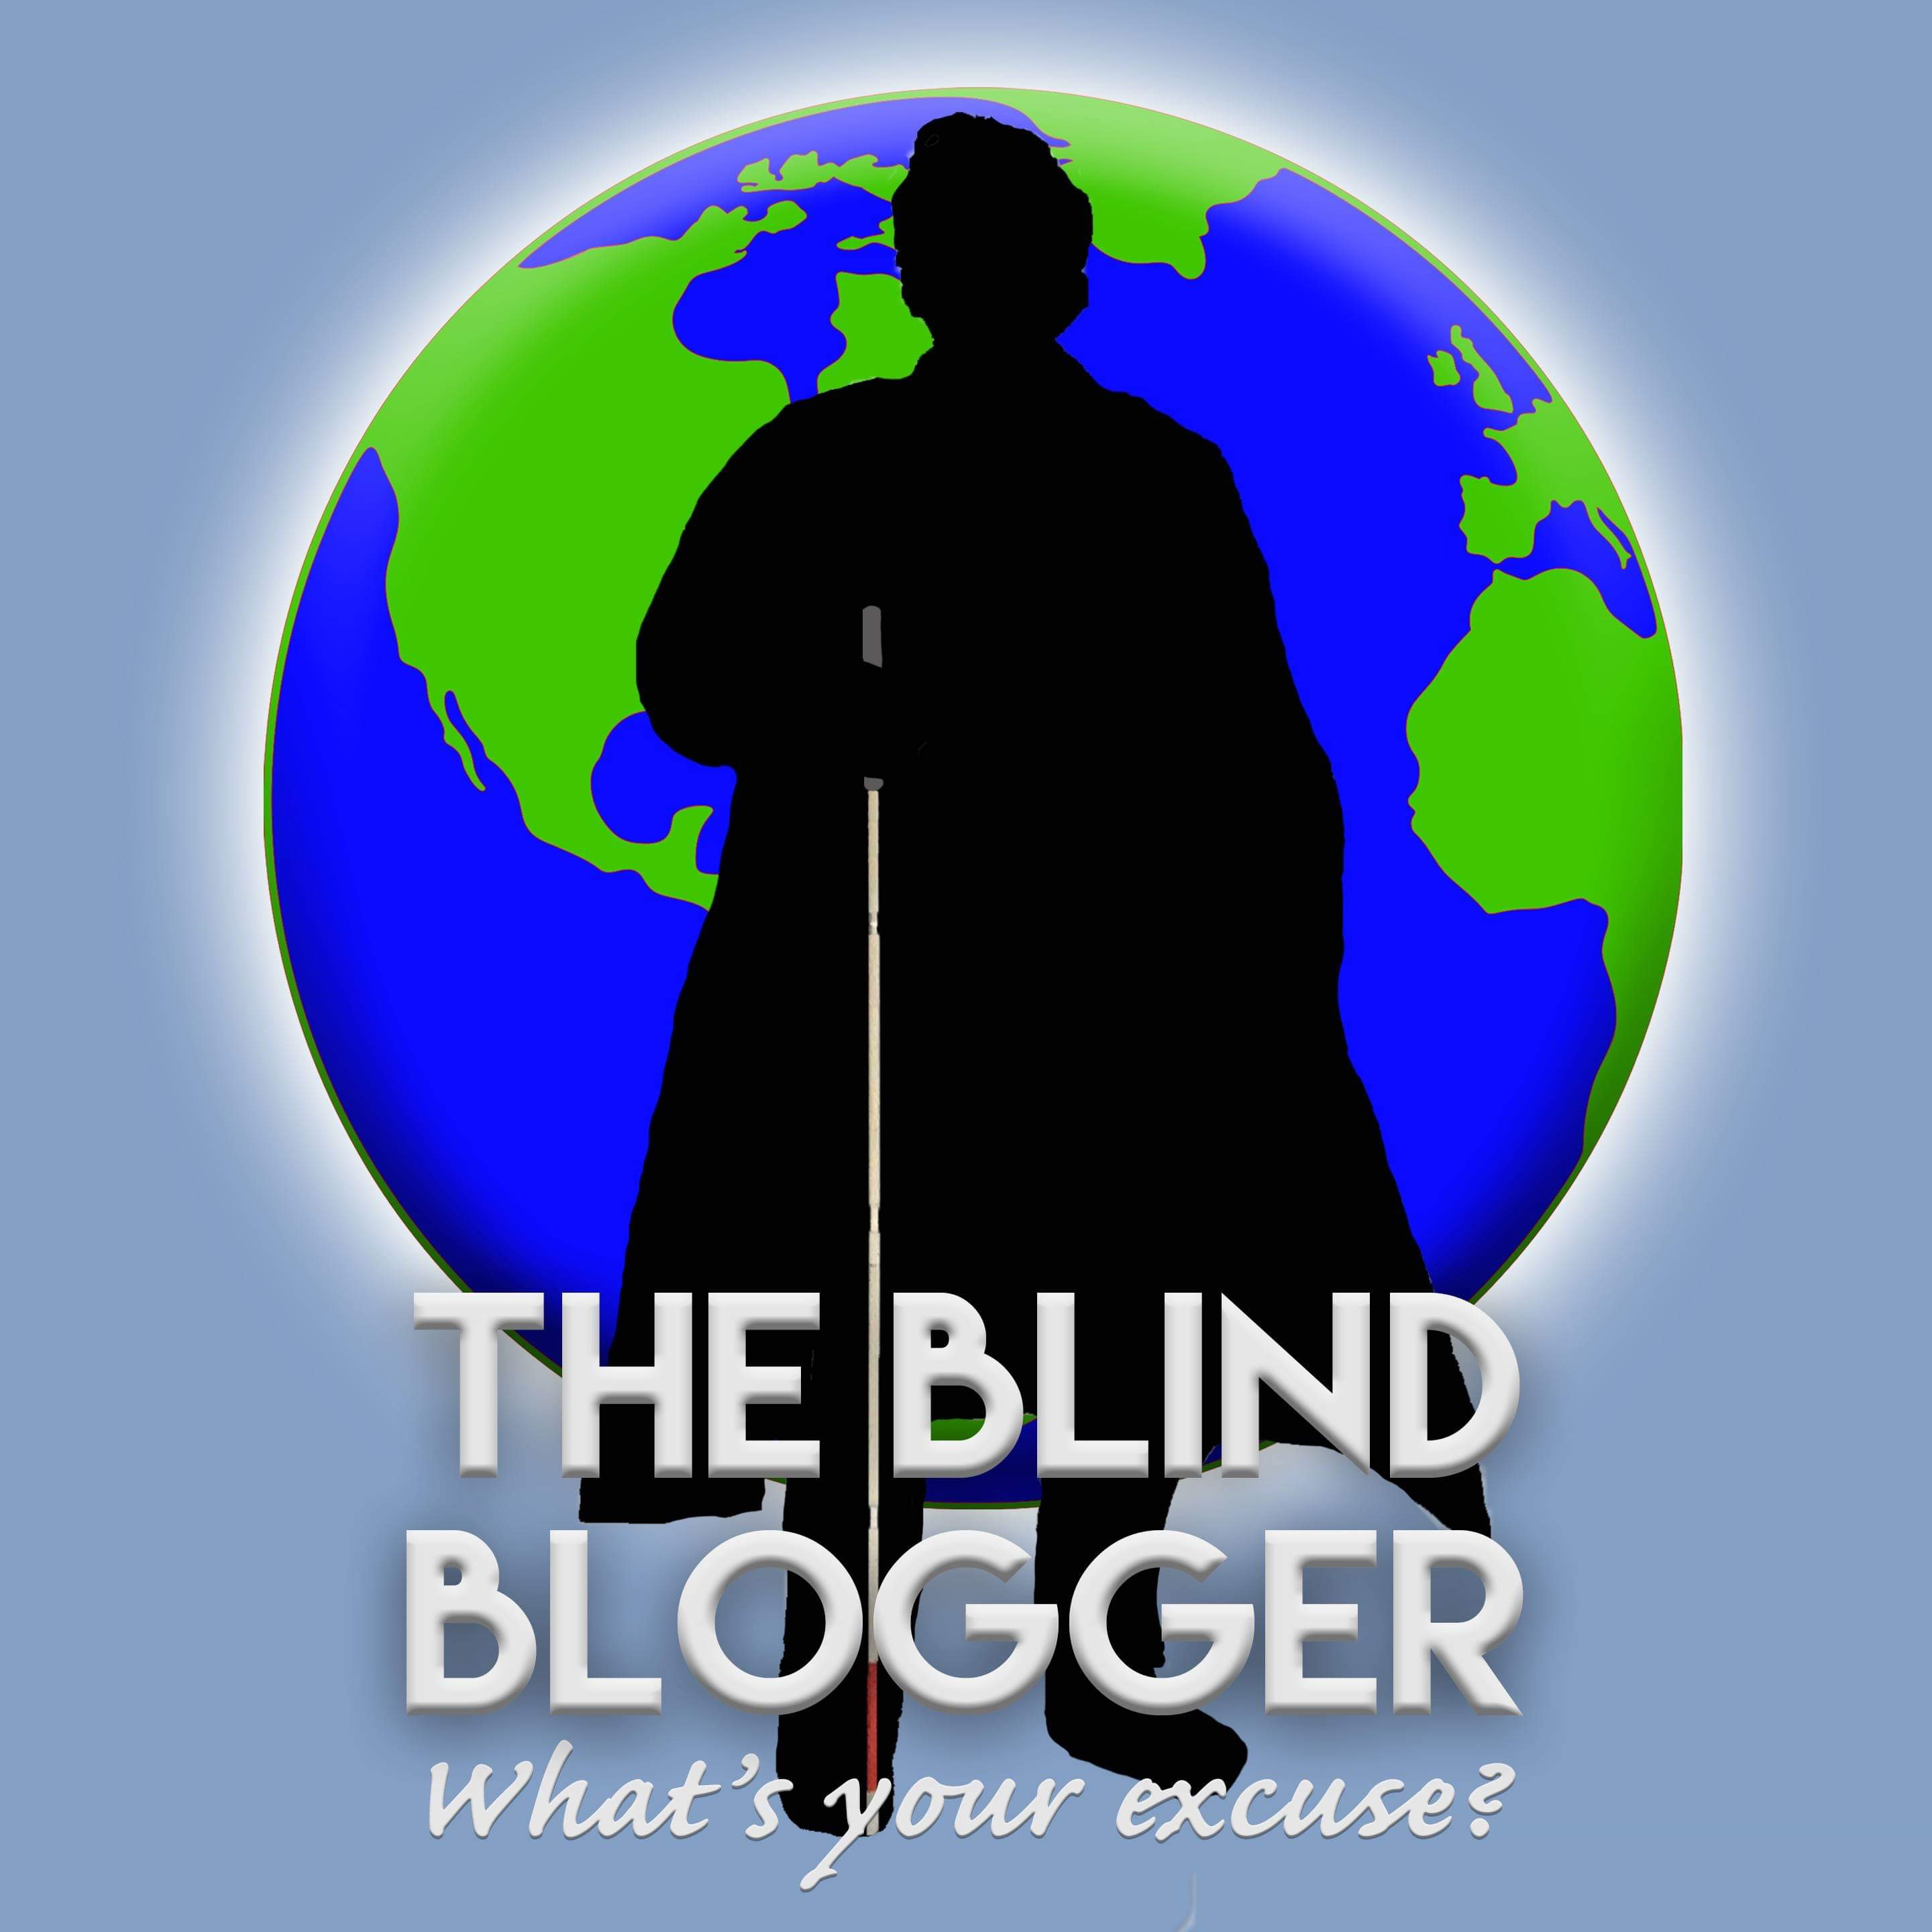 After losing his vision at a young age, Maxwell Ivey learned the power in staying flexible as he adapted and eventually became known as The Blind Blogger. The Brave Files.